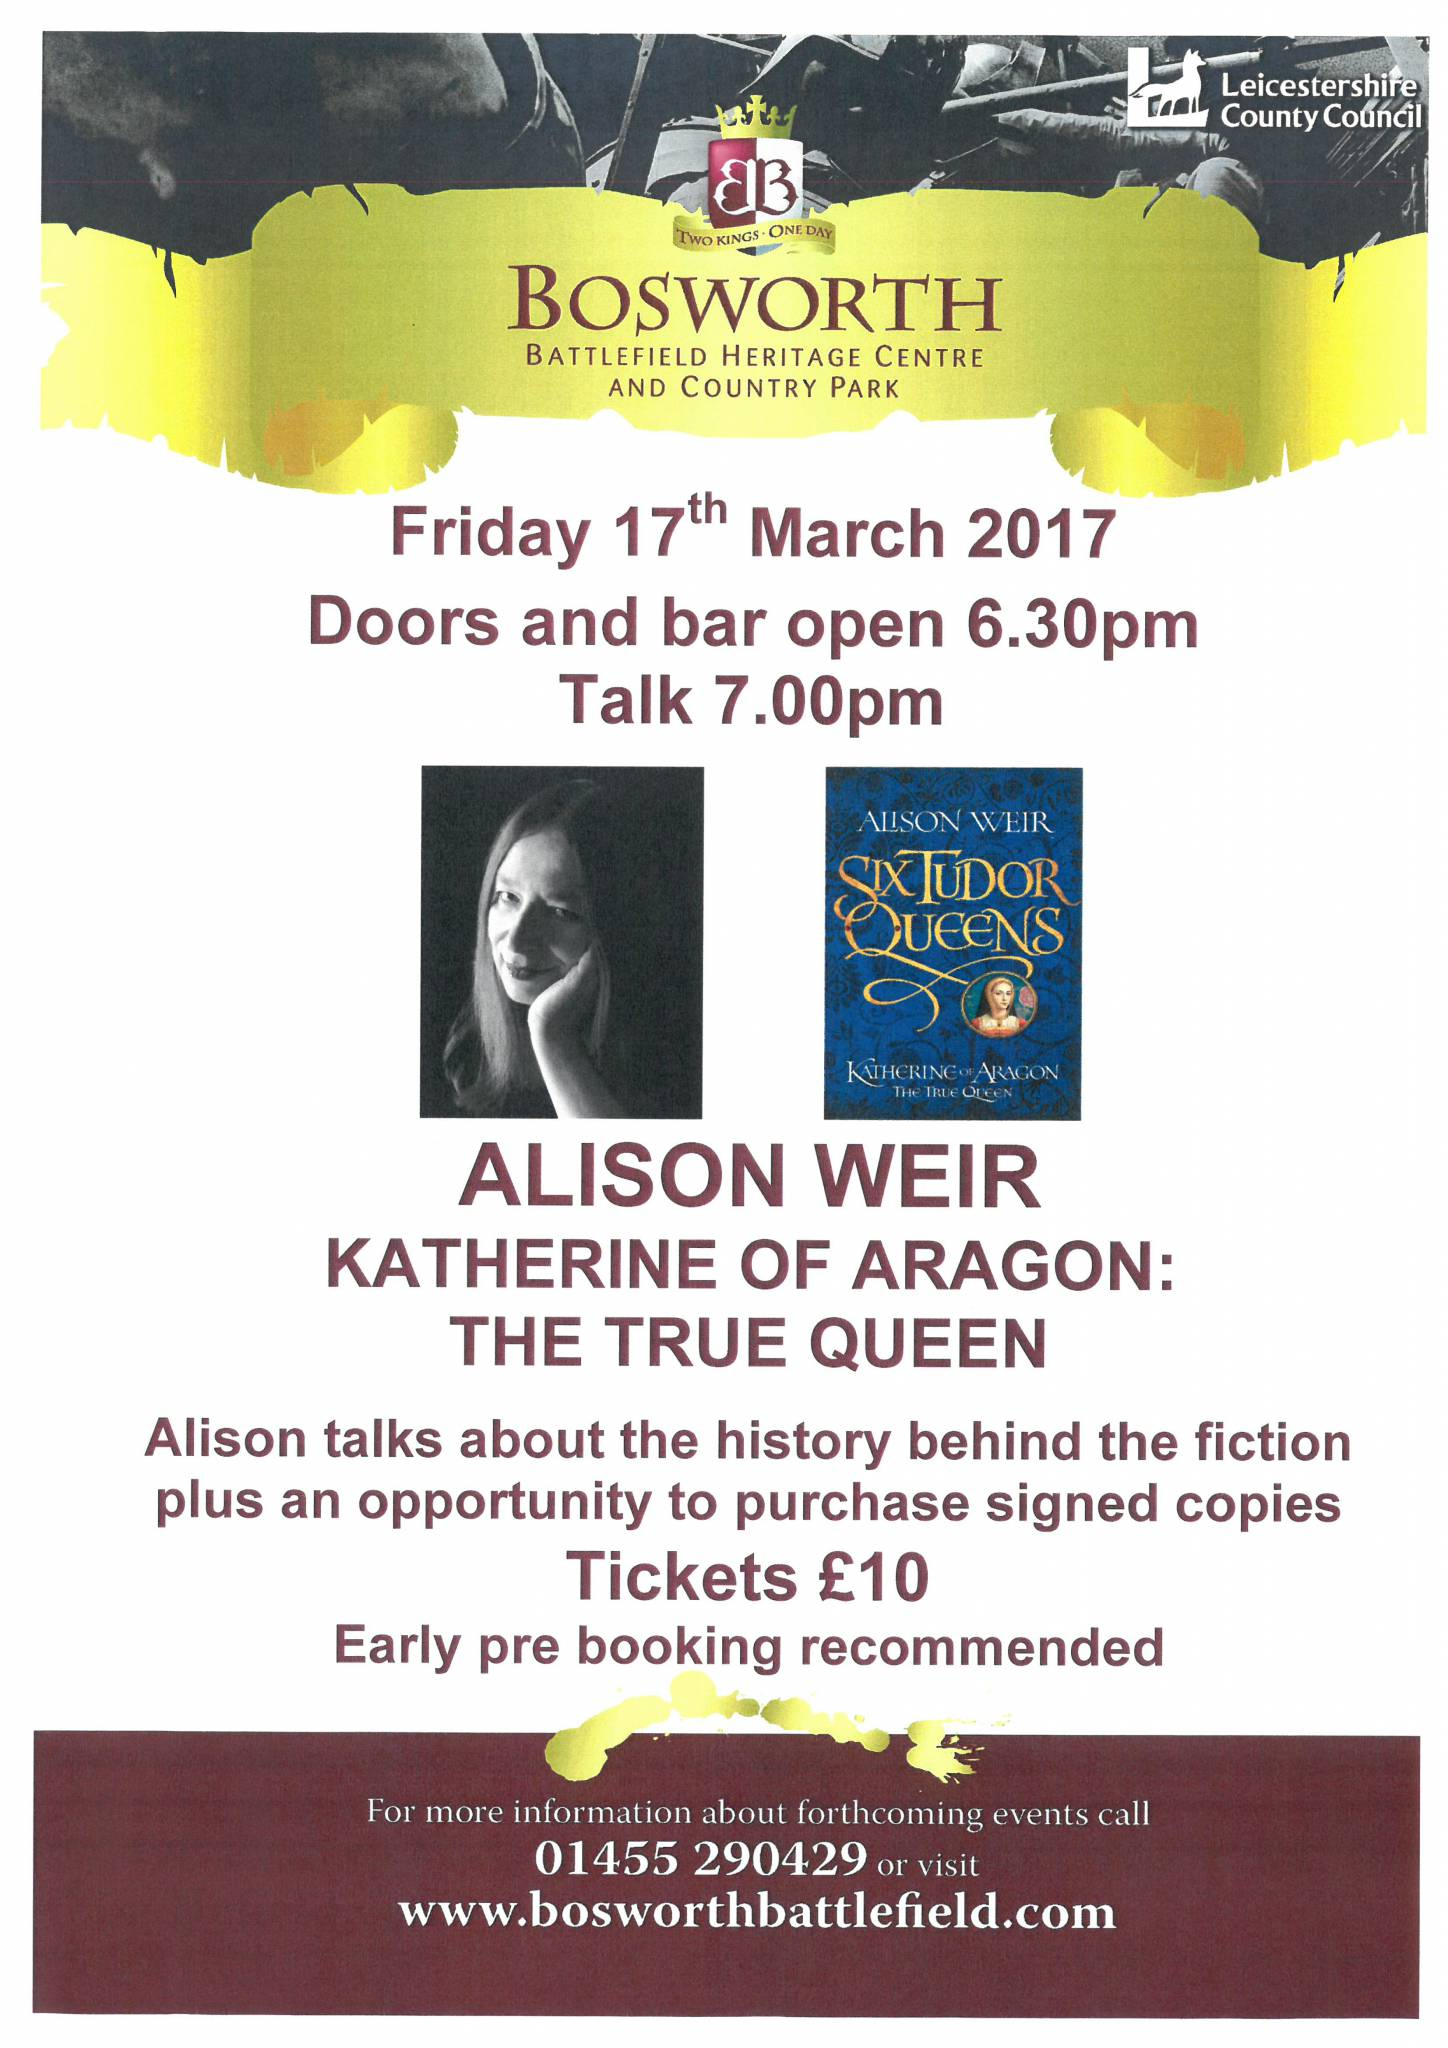 Alison Weir - Katherine of Aragon: The True Queen Talk - SOLD OUT